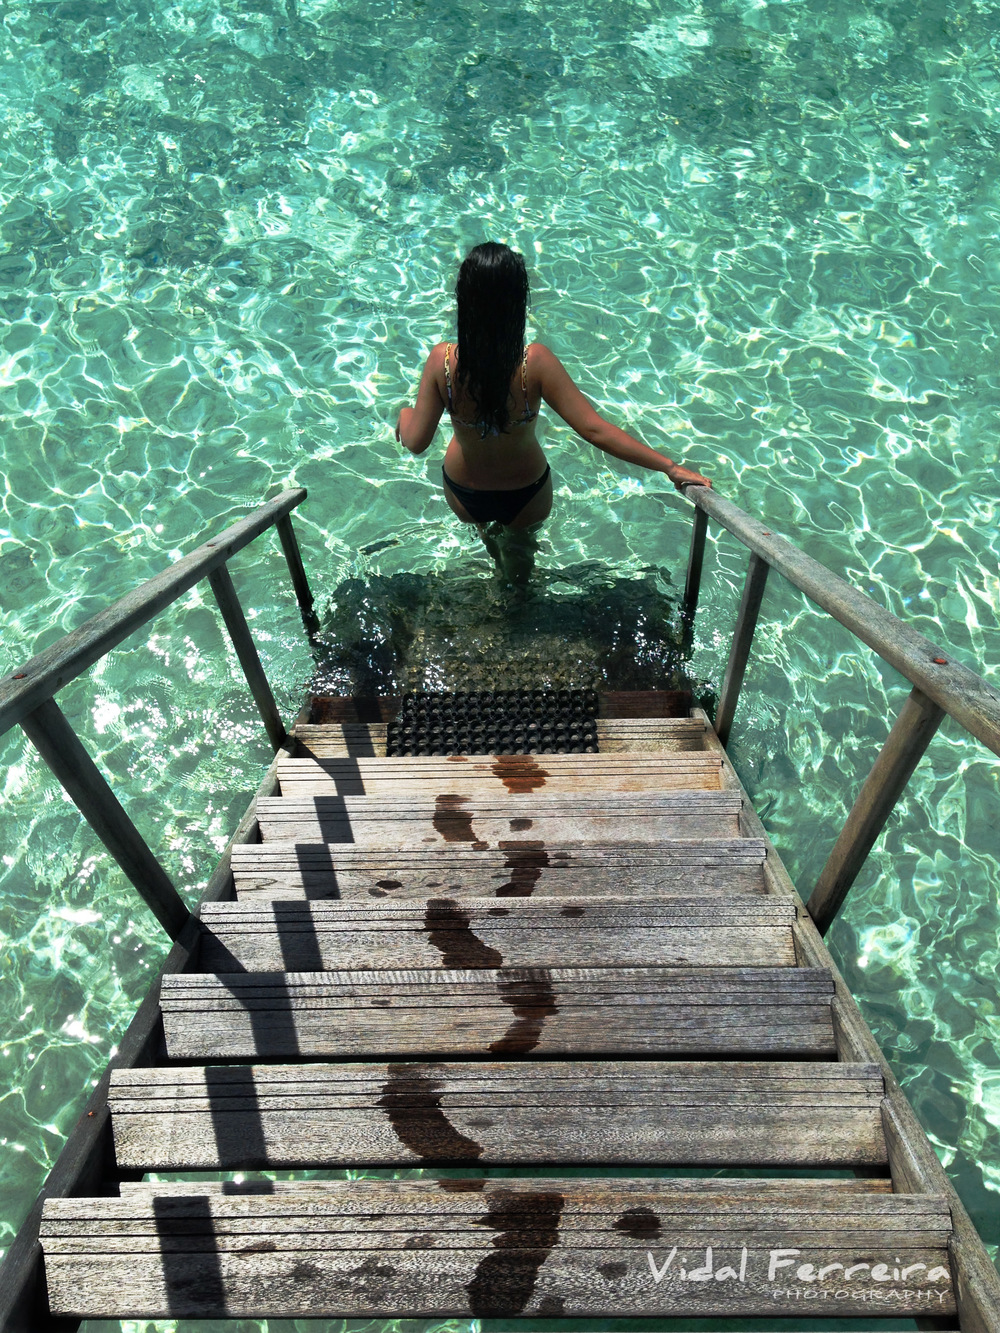 Follow Me - Maldives Islands